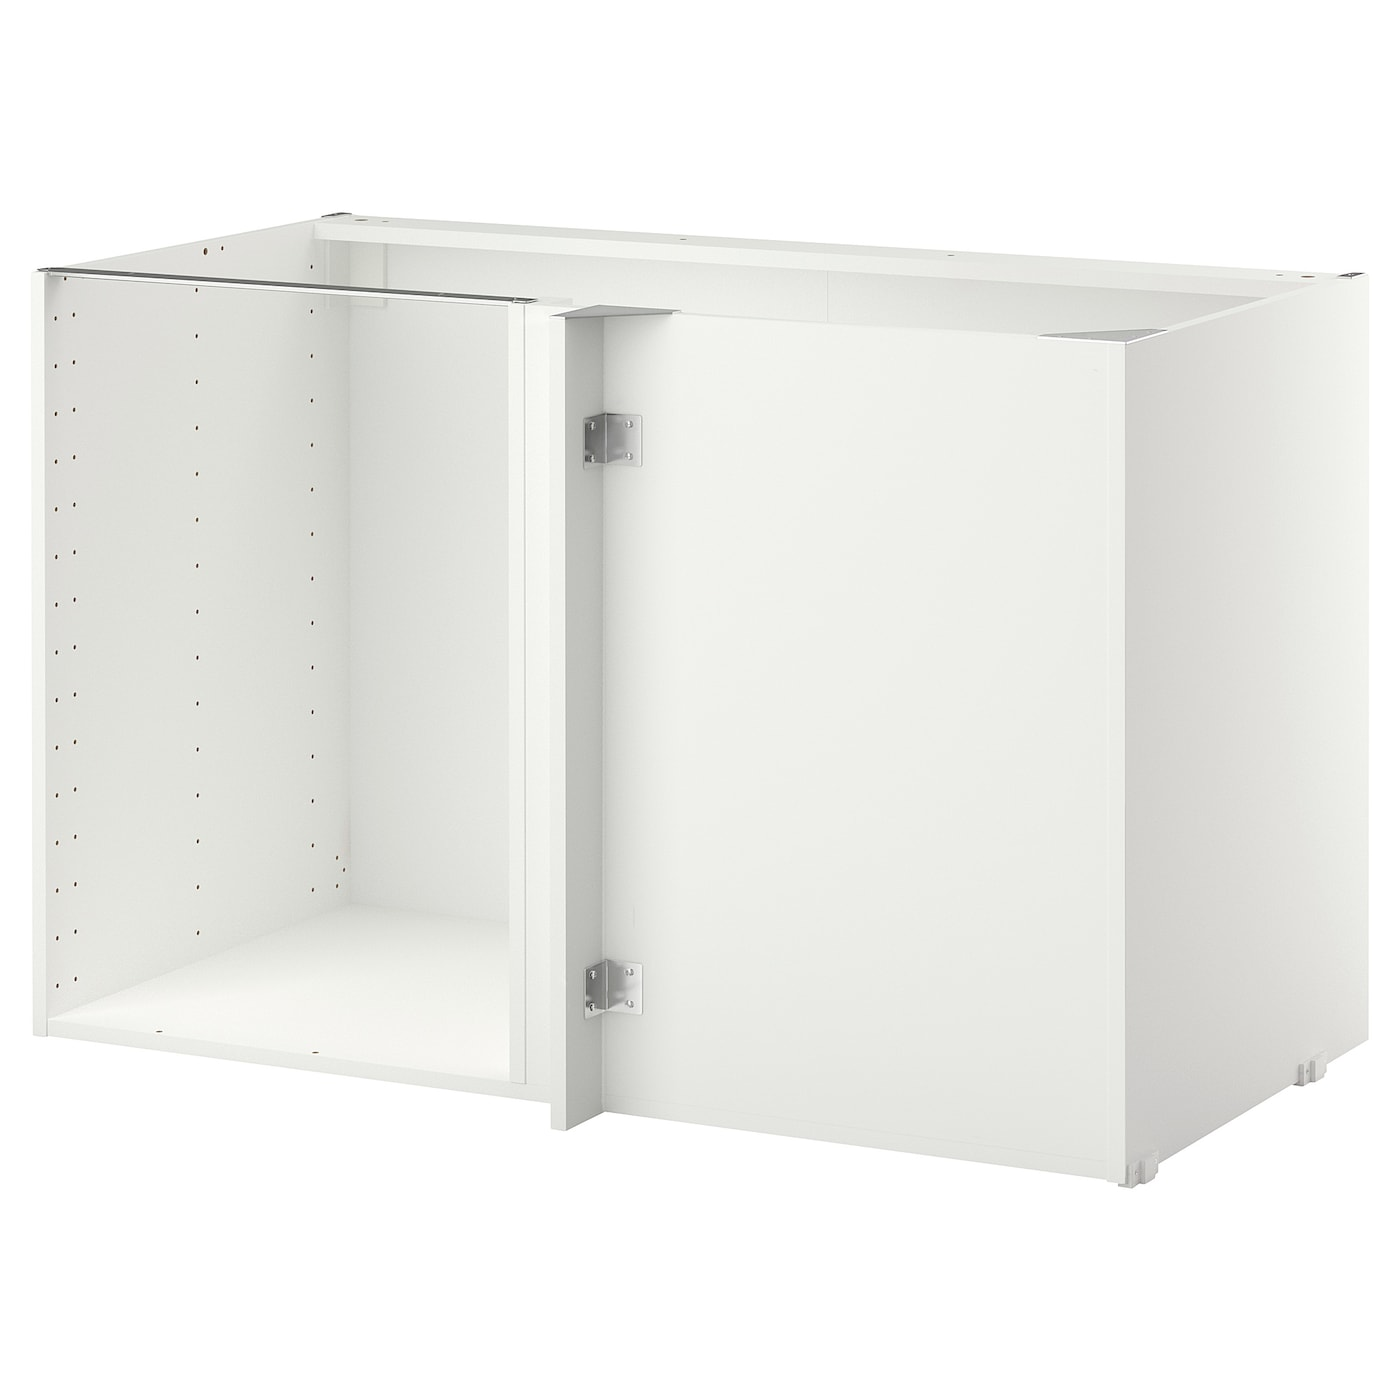 IKEA METOD corner base cabinet frame Sturdy frame construction, 18 mm thick.